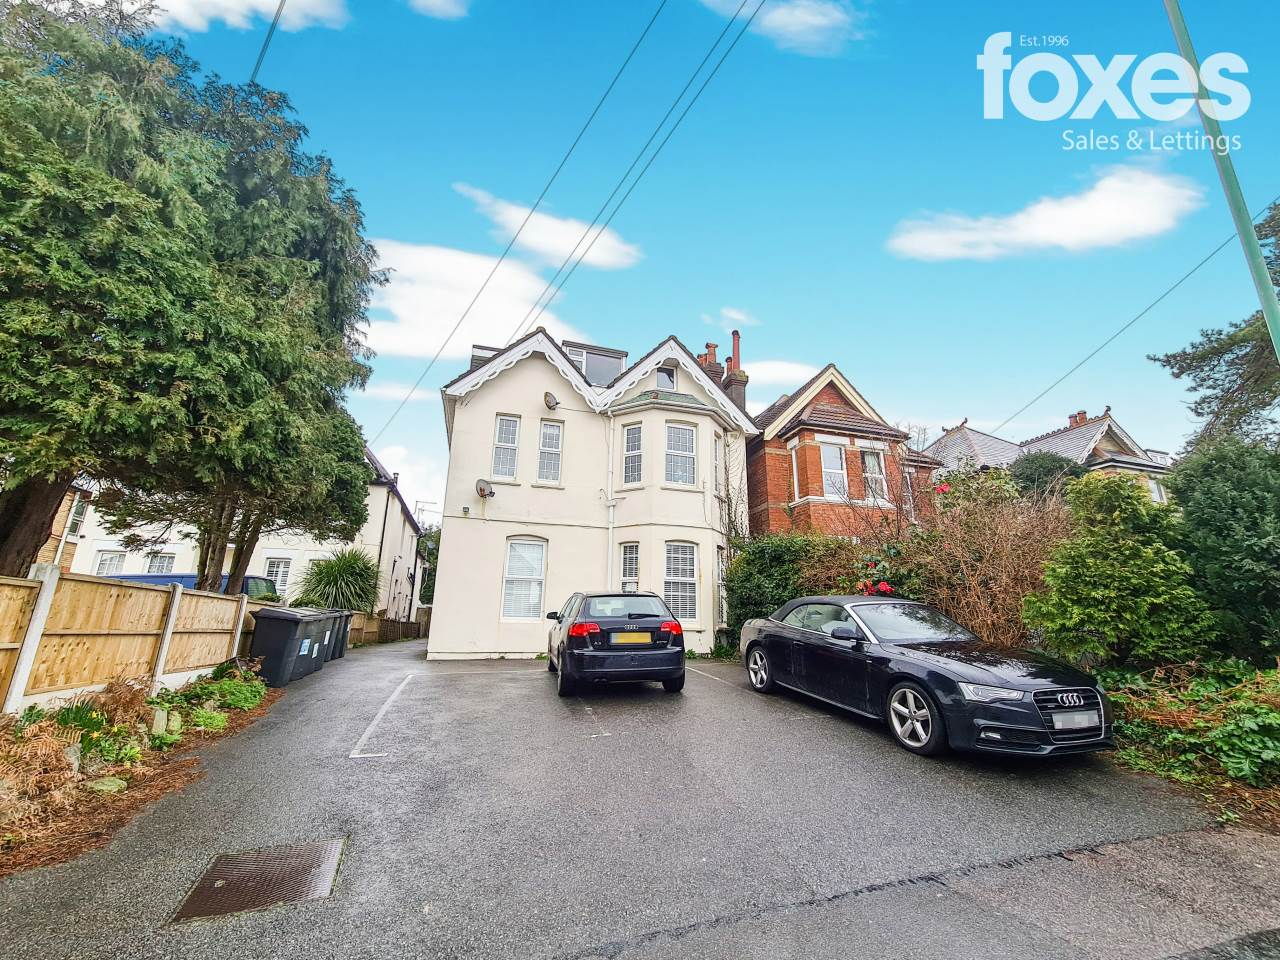 2 bed flat to rent in Southbourne, Bournemouth, BH5